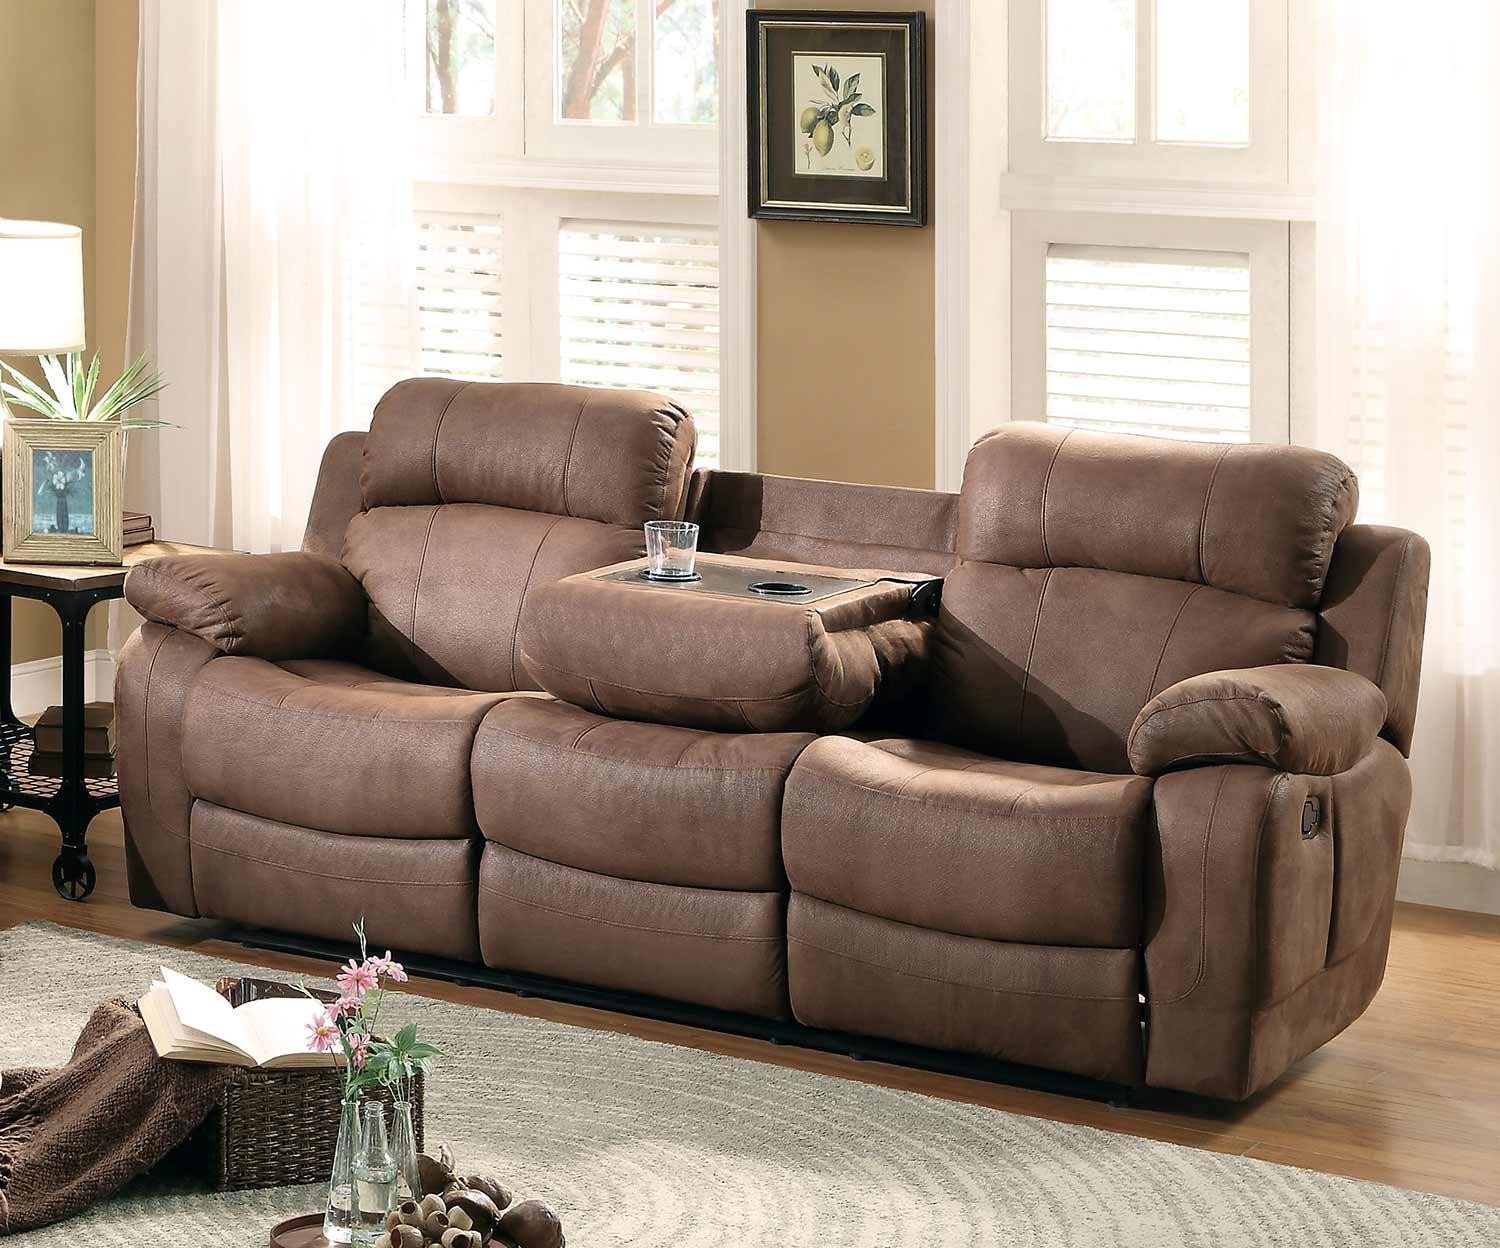 Homelegance Marille Reclining Sofa Set – Dark Brown 9724Dbr Sofa With Regard To Homelegance Sofas (View 19 of 20)